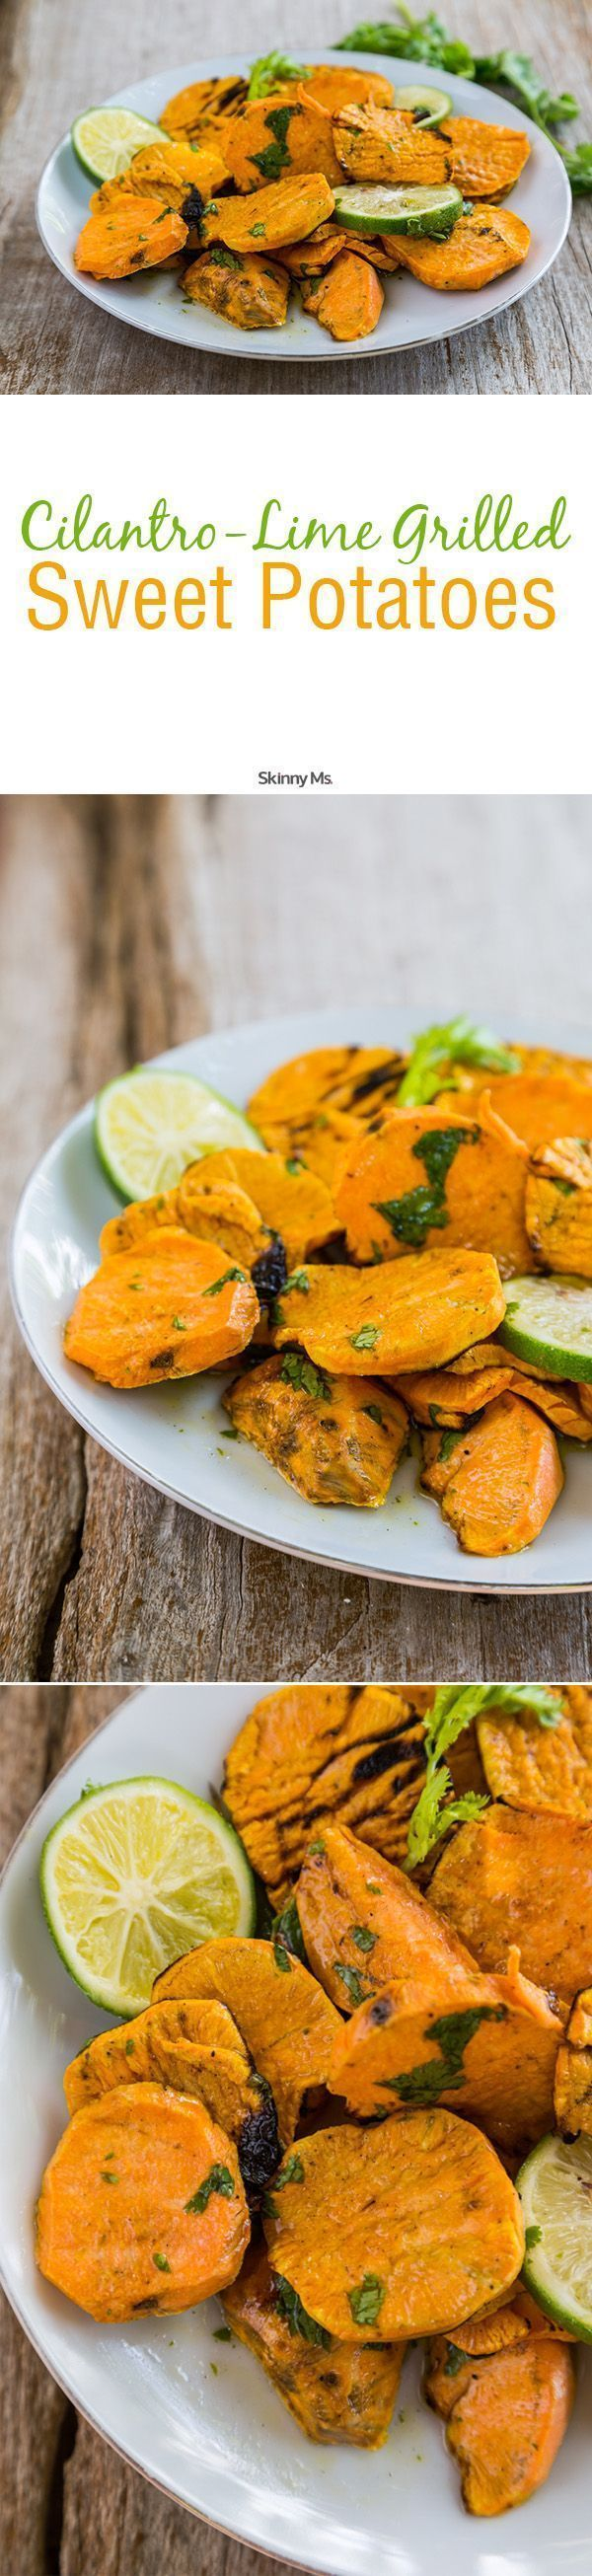 Sweet Potatoes With Lime-Cilantro Dressing Recipe — Dishmaps